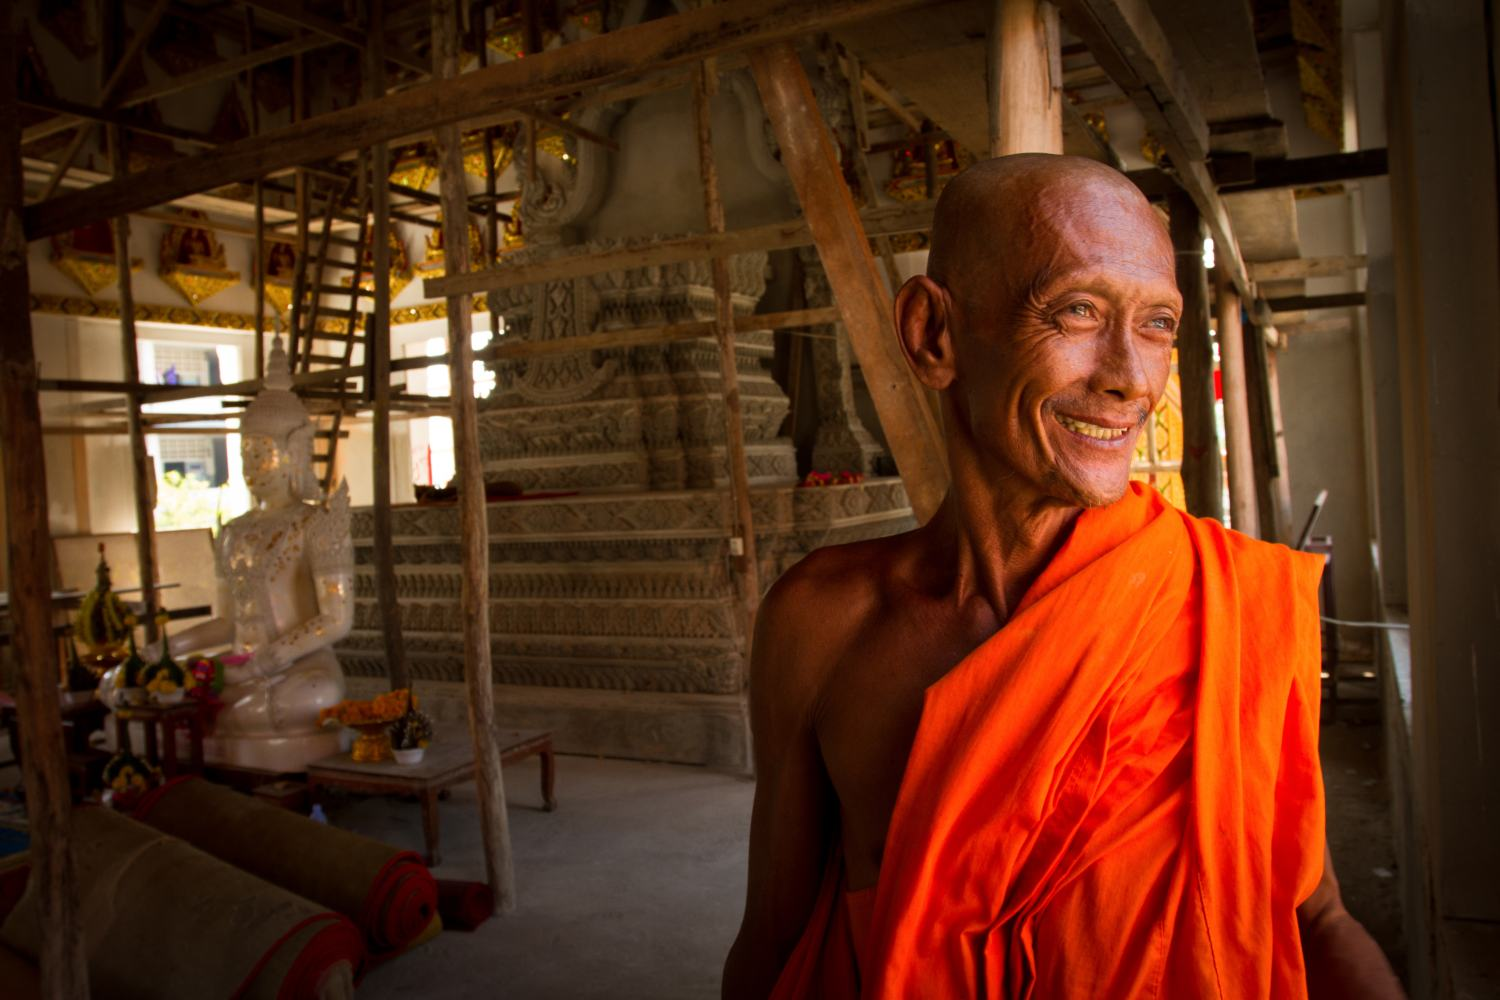 An elderly monk smiles while showing me around his temple that is being built in the cultural city of Sukhothai.